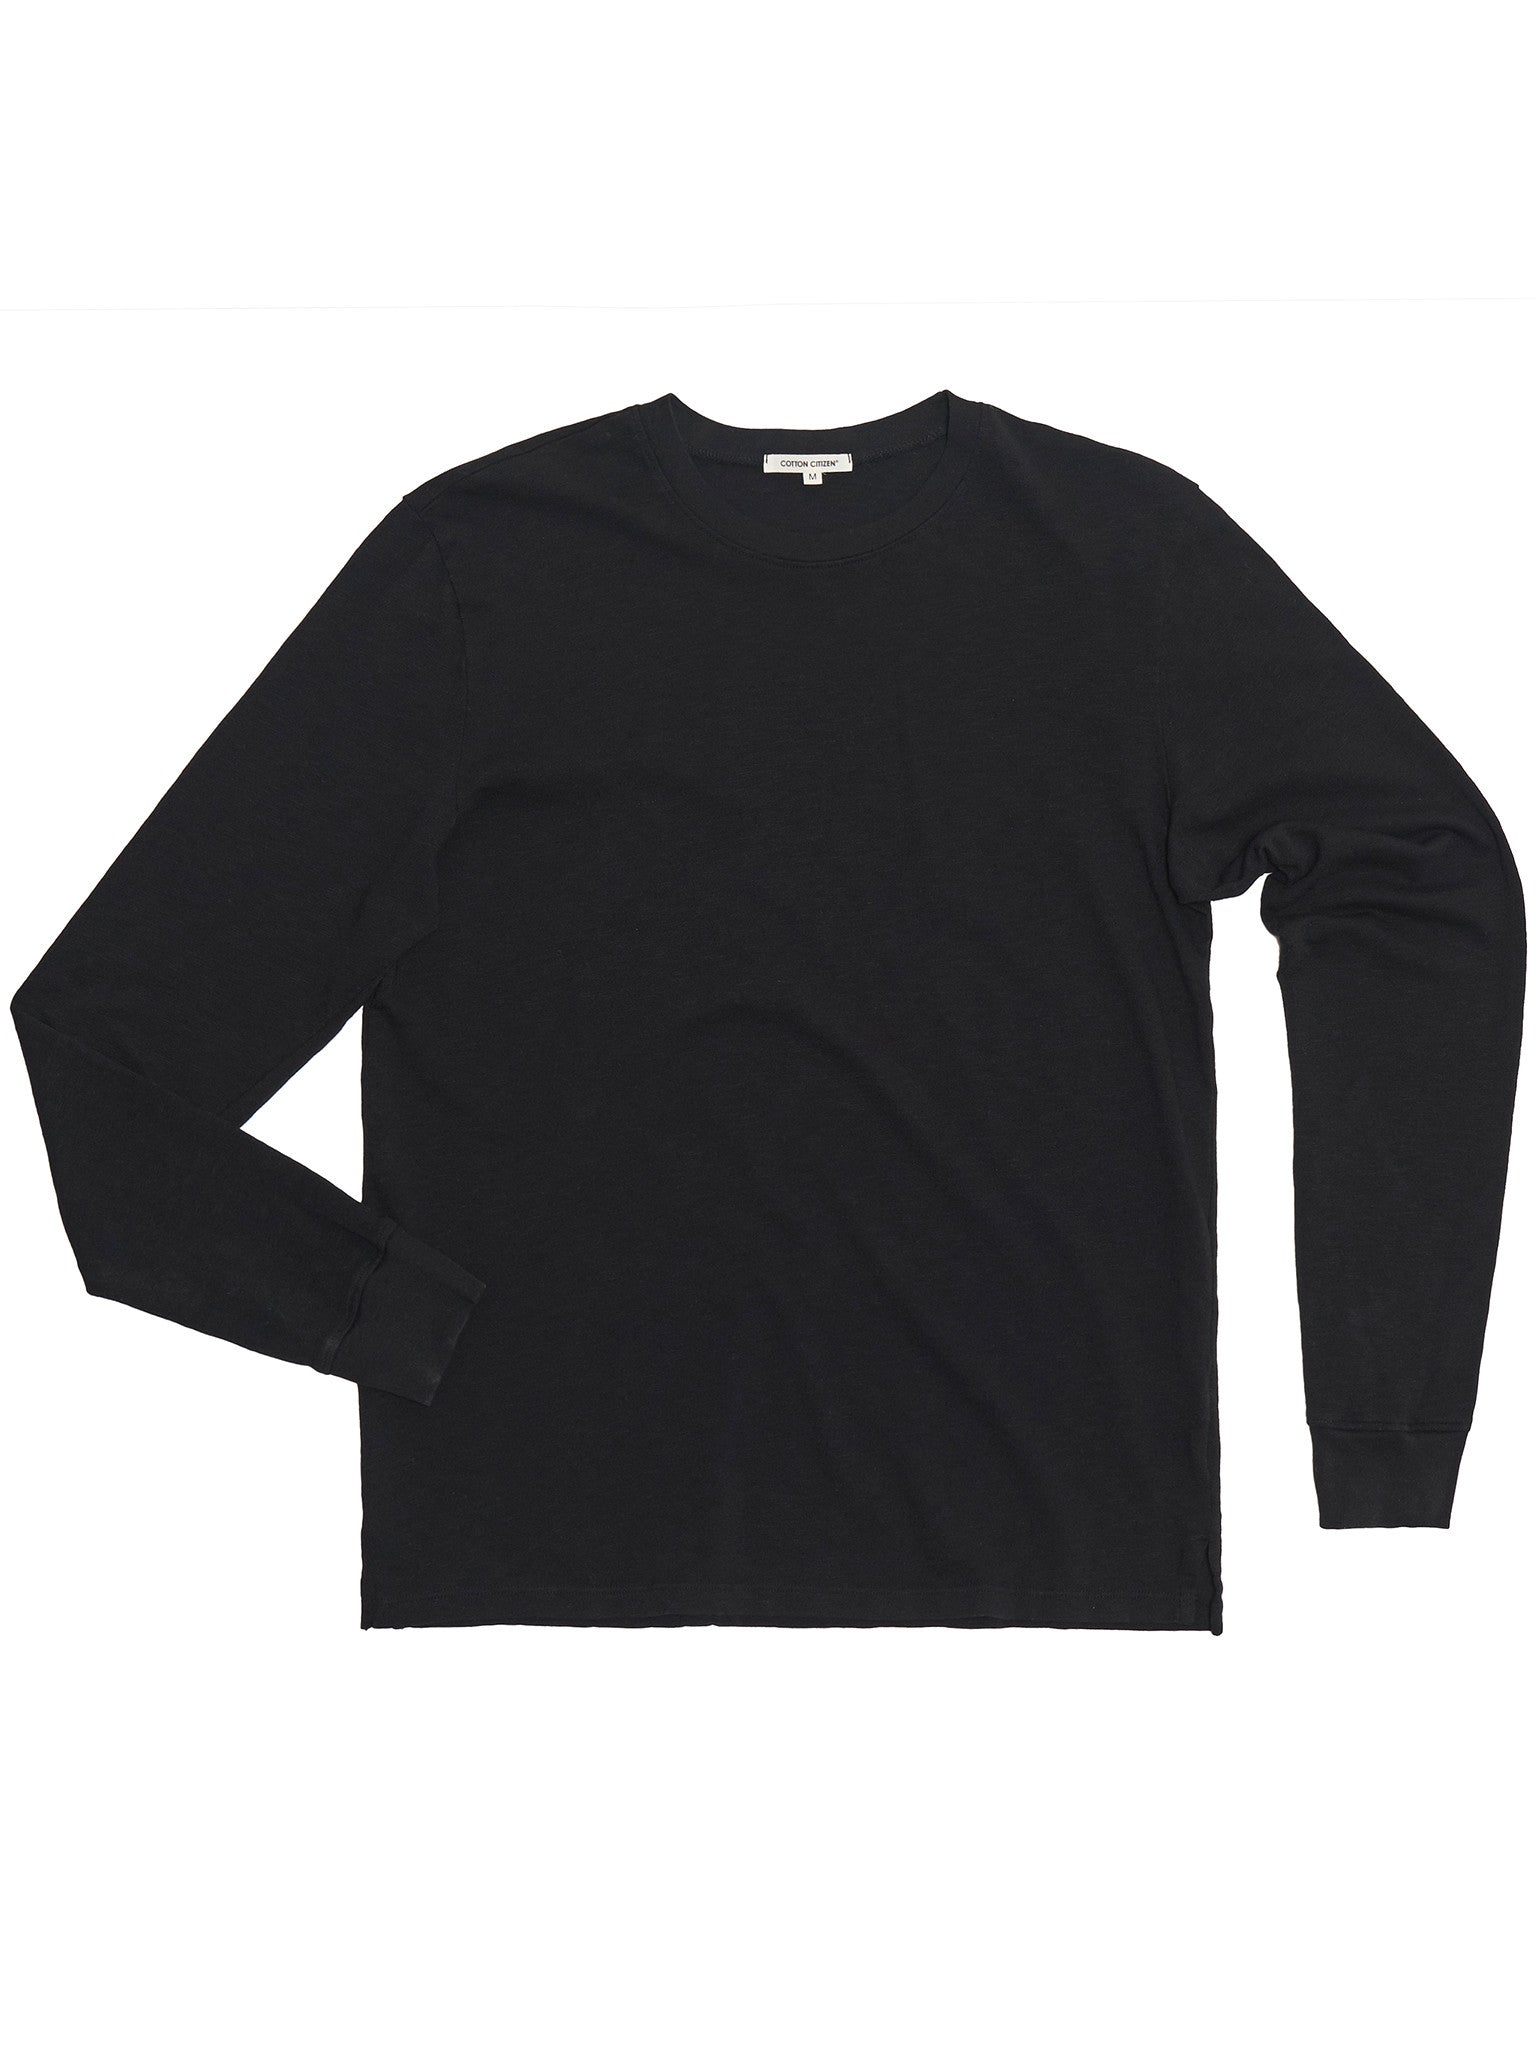 Presley Long Sleeve